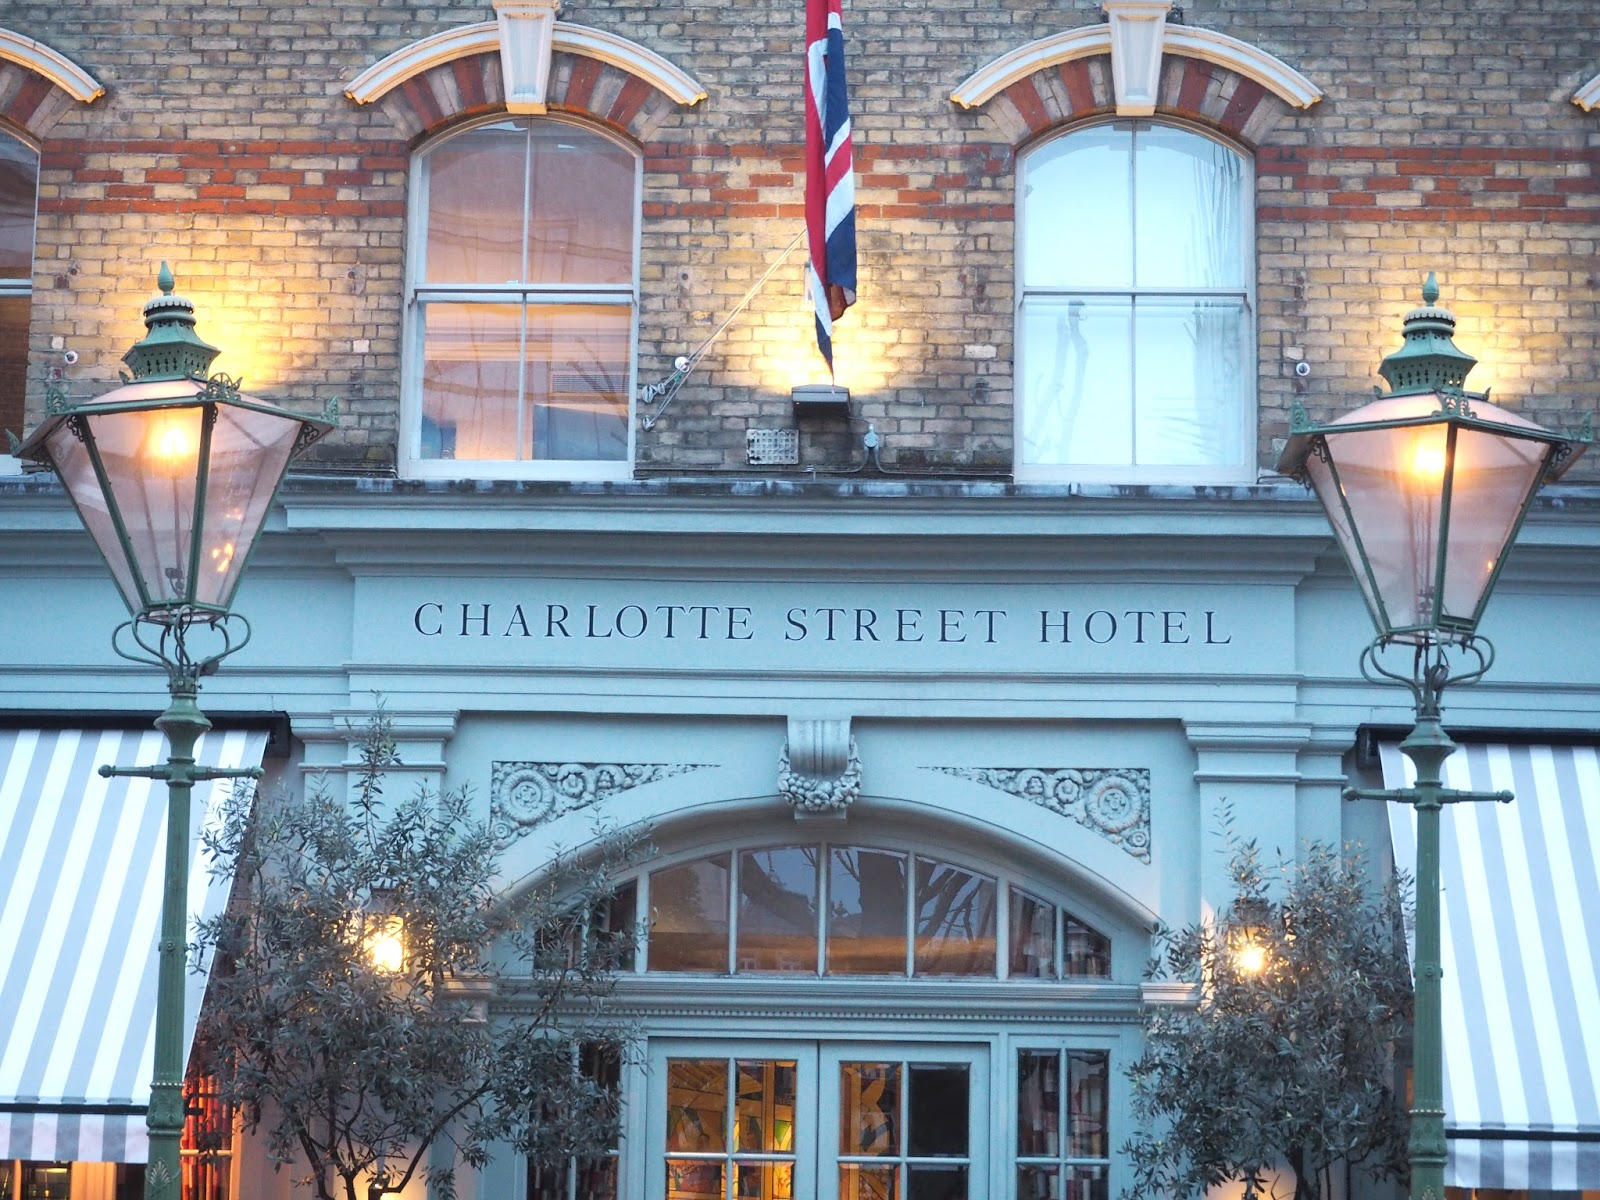 Charlotte Street Hotel London | Katie Kirk Loves